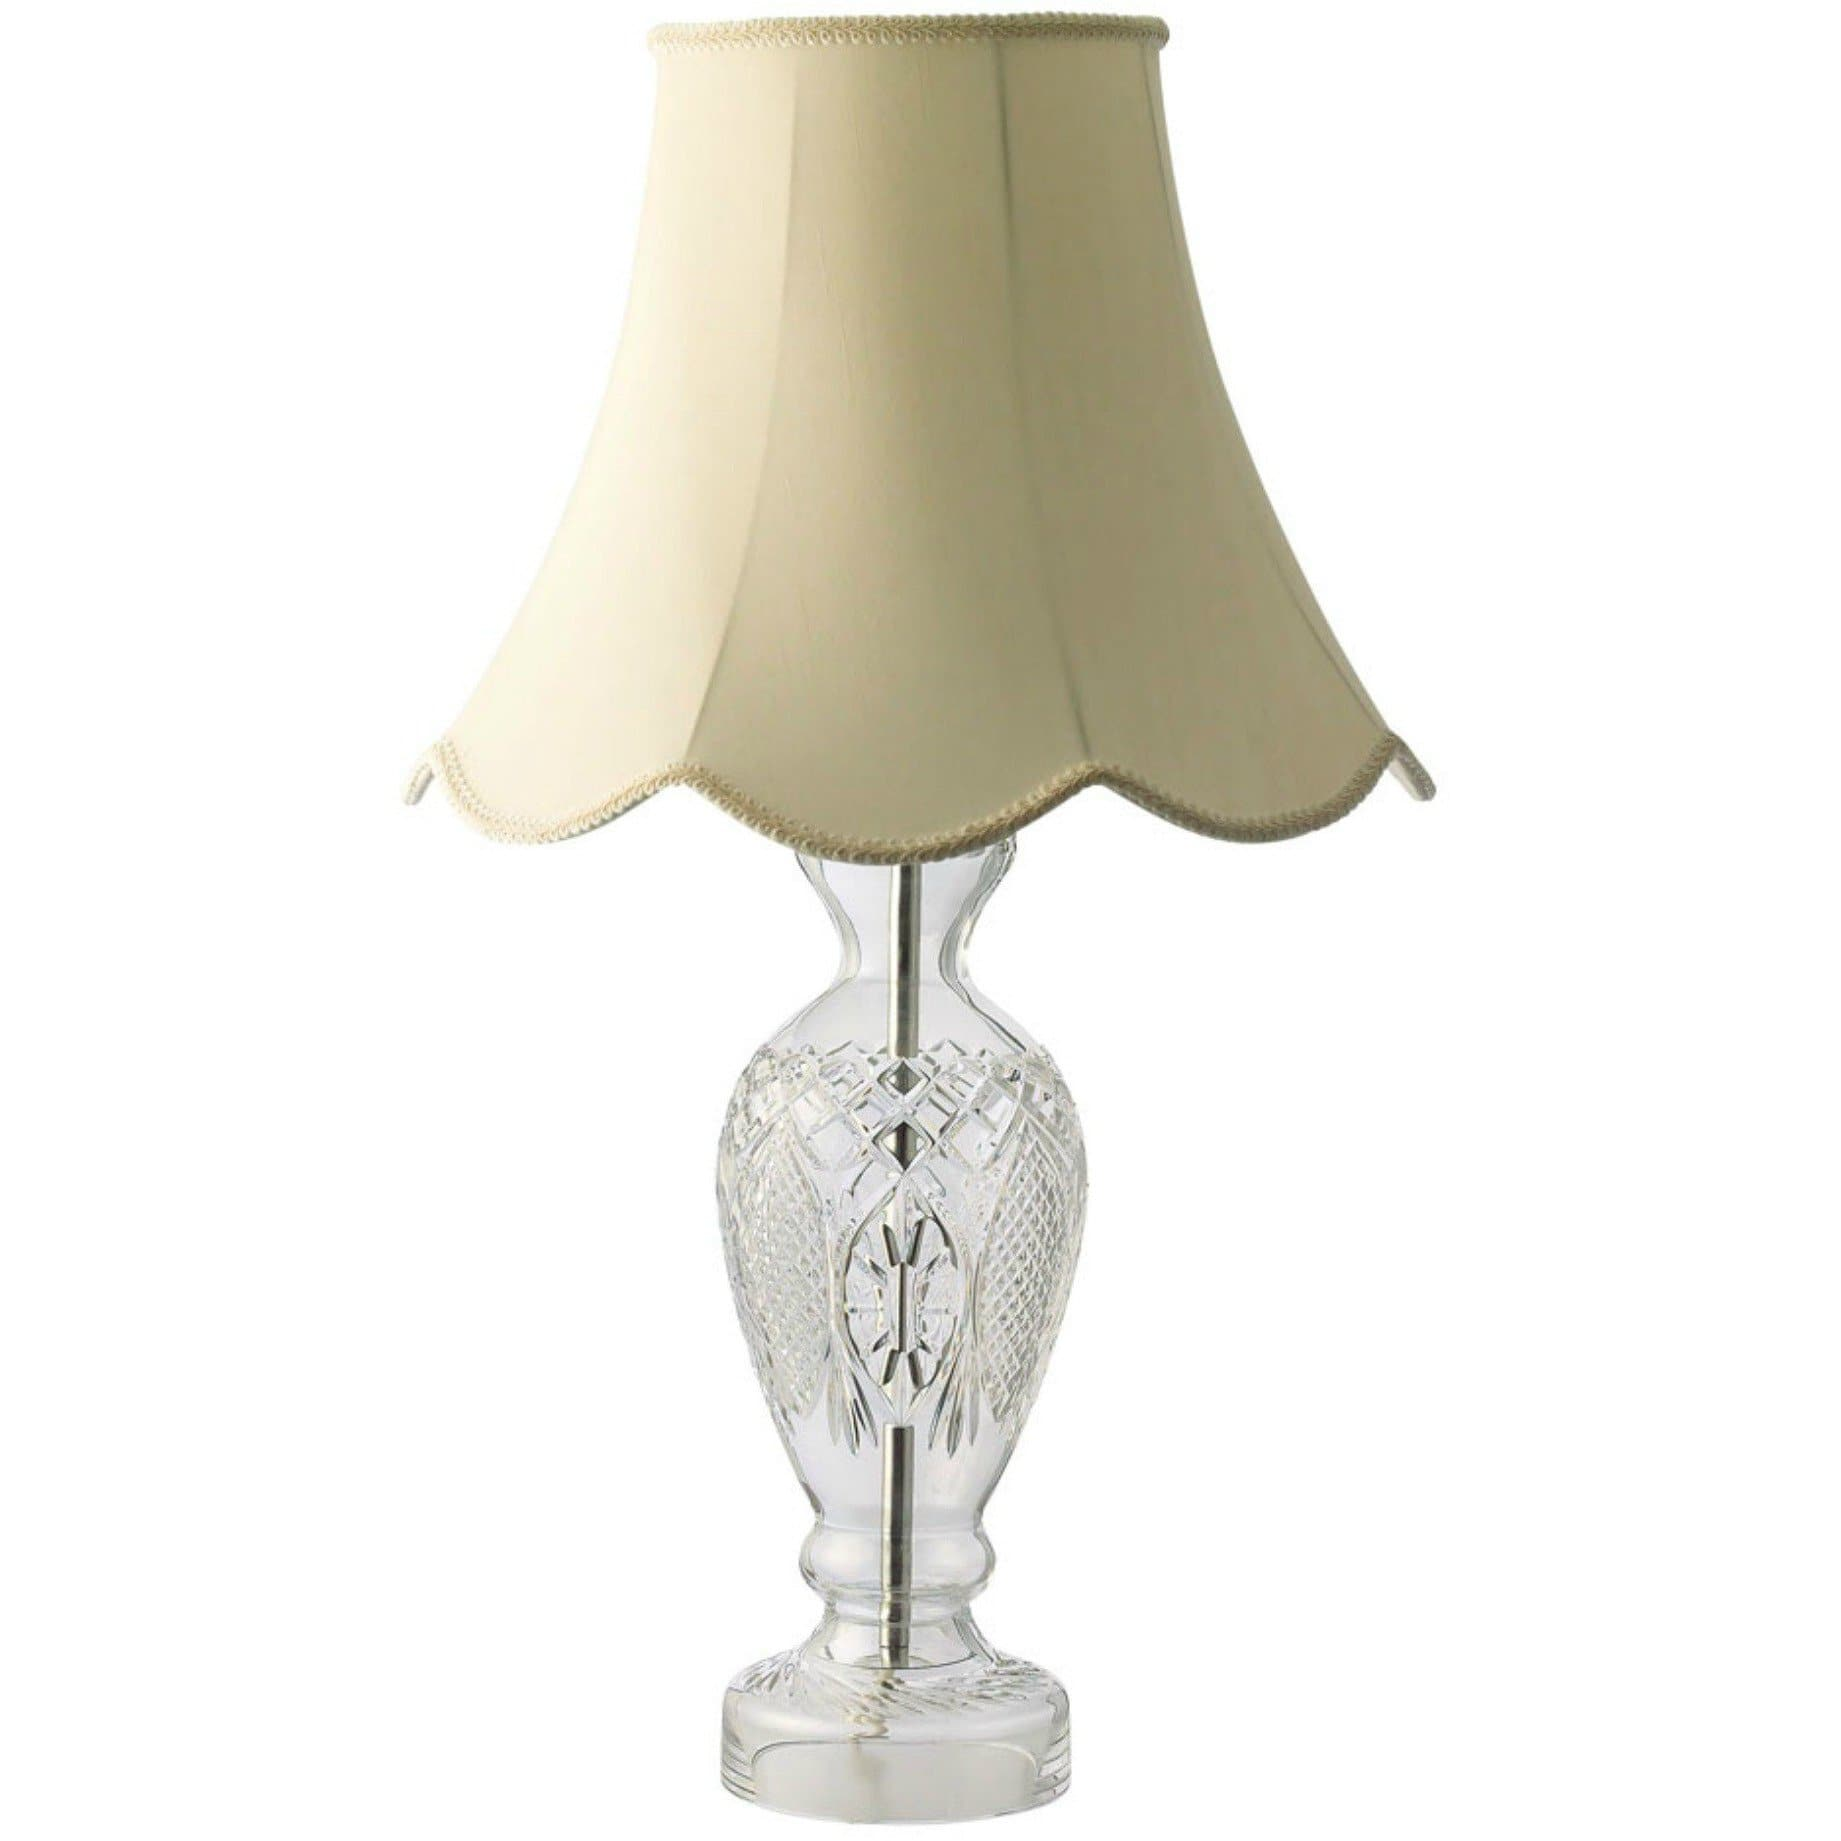 "Corrib 15"" Lamp & Shade IRL/UK Fittings"